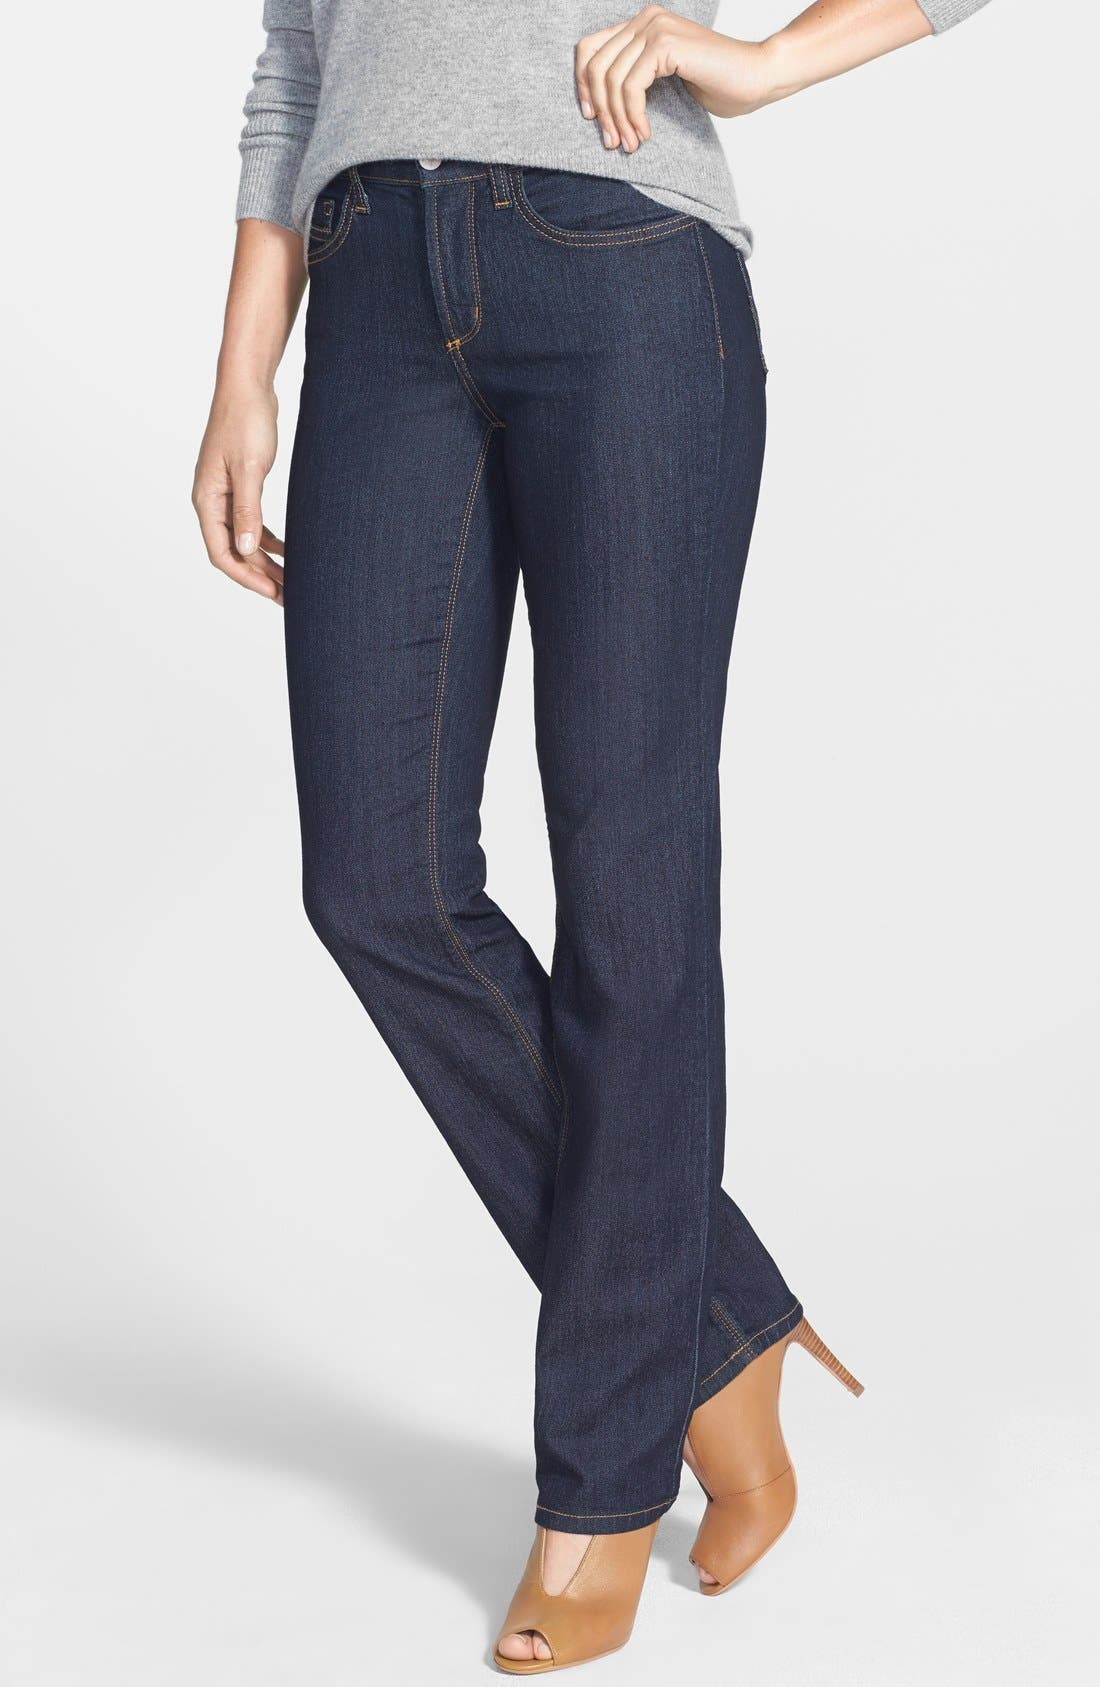 Main Image - NYDJ 'Marilyn' Stretch Straight Leg Jeans (Dark Enzyme) (Regular & Petite)